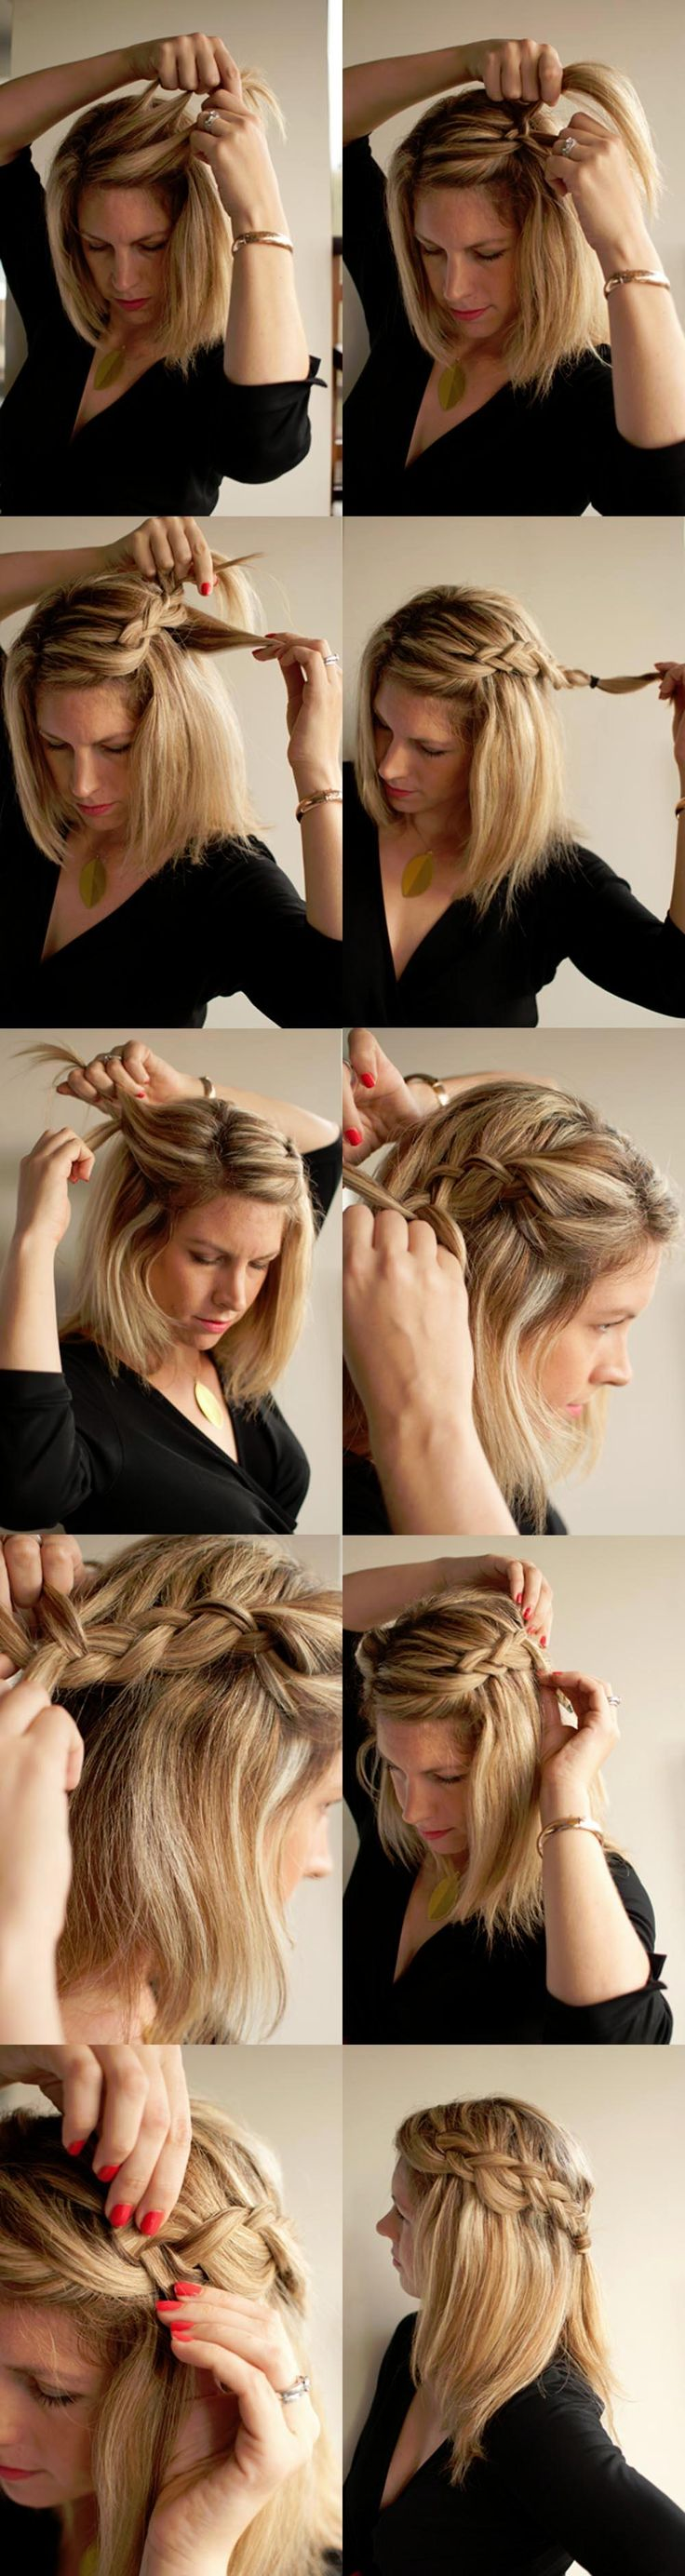 Backwards-or-inside-out-braid-Tutorial   #hair tutorials #hairstyle tutorials